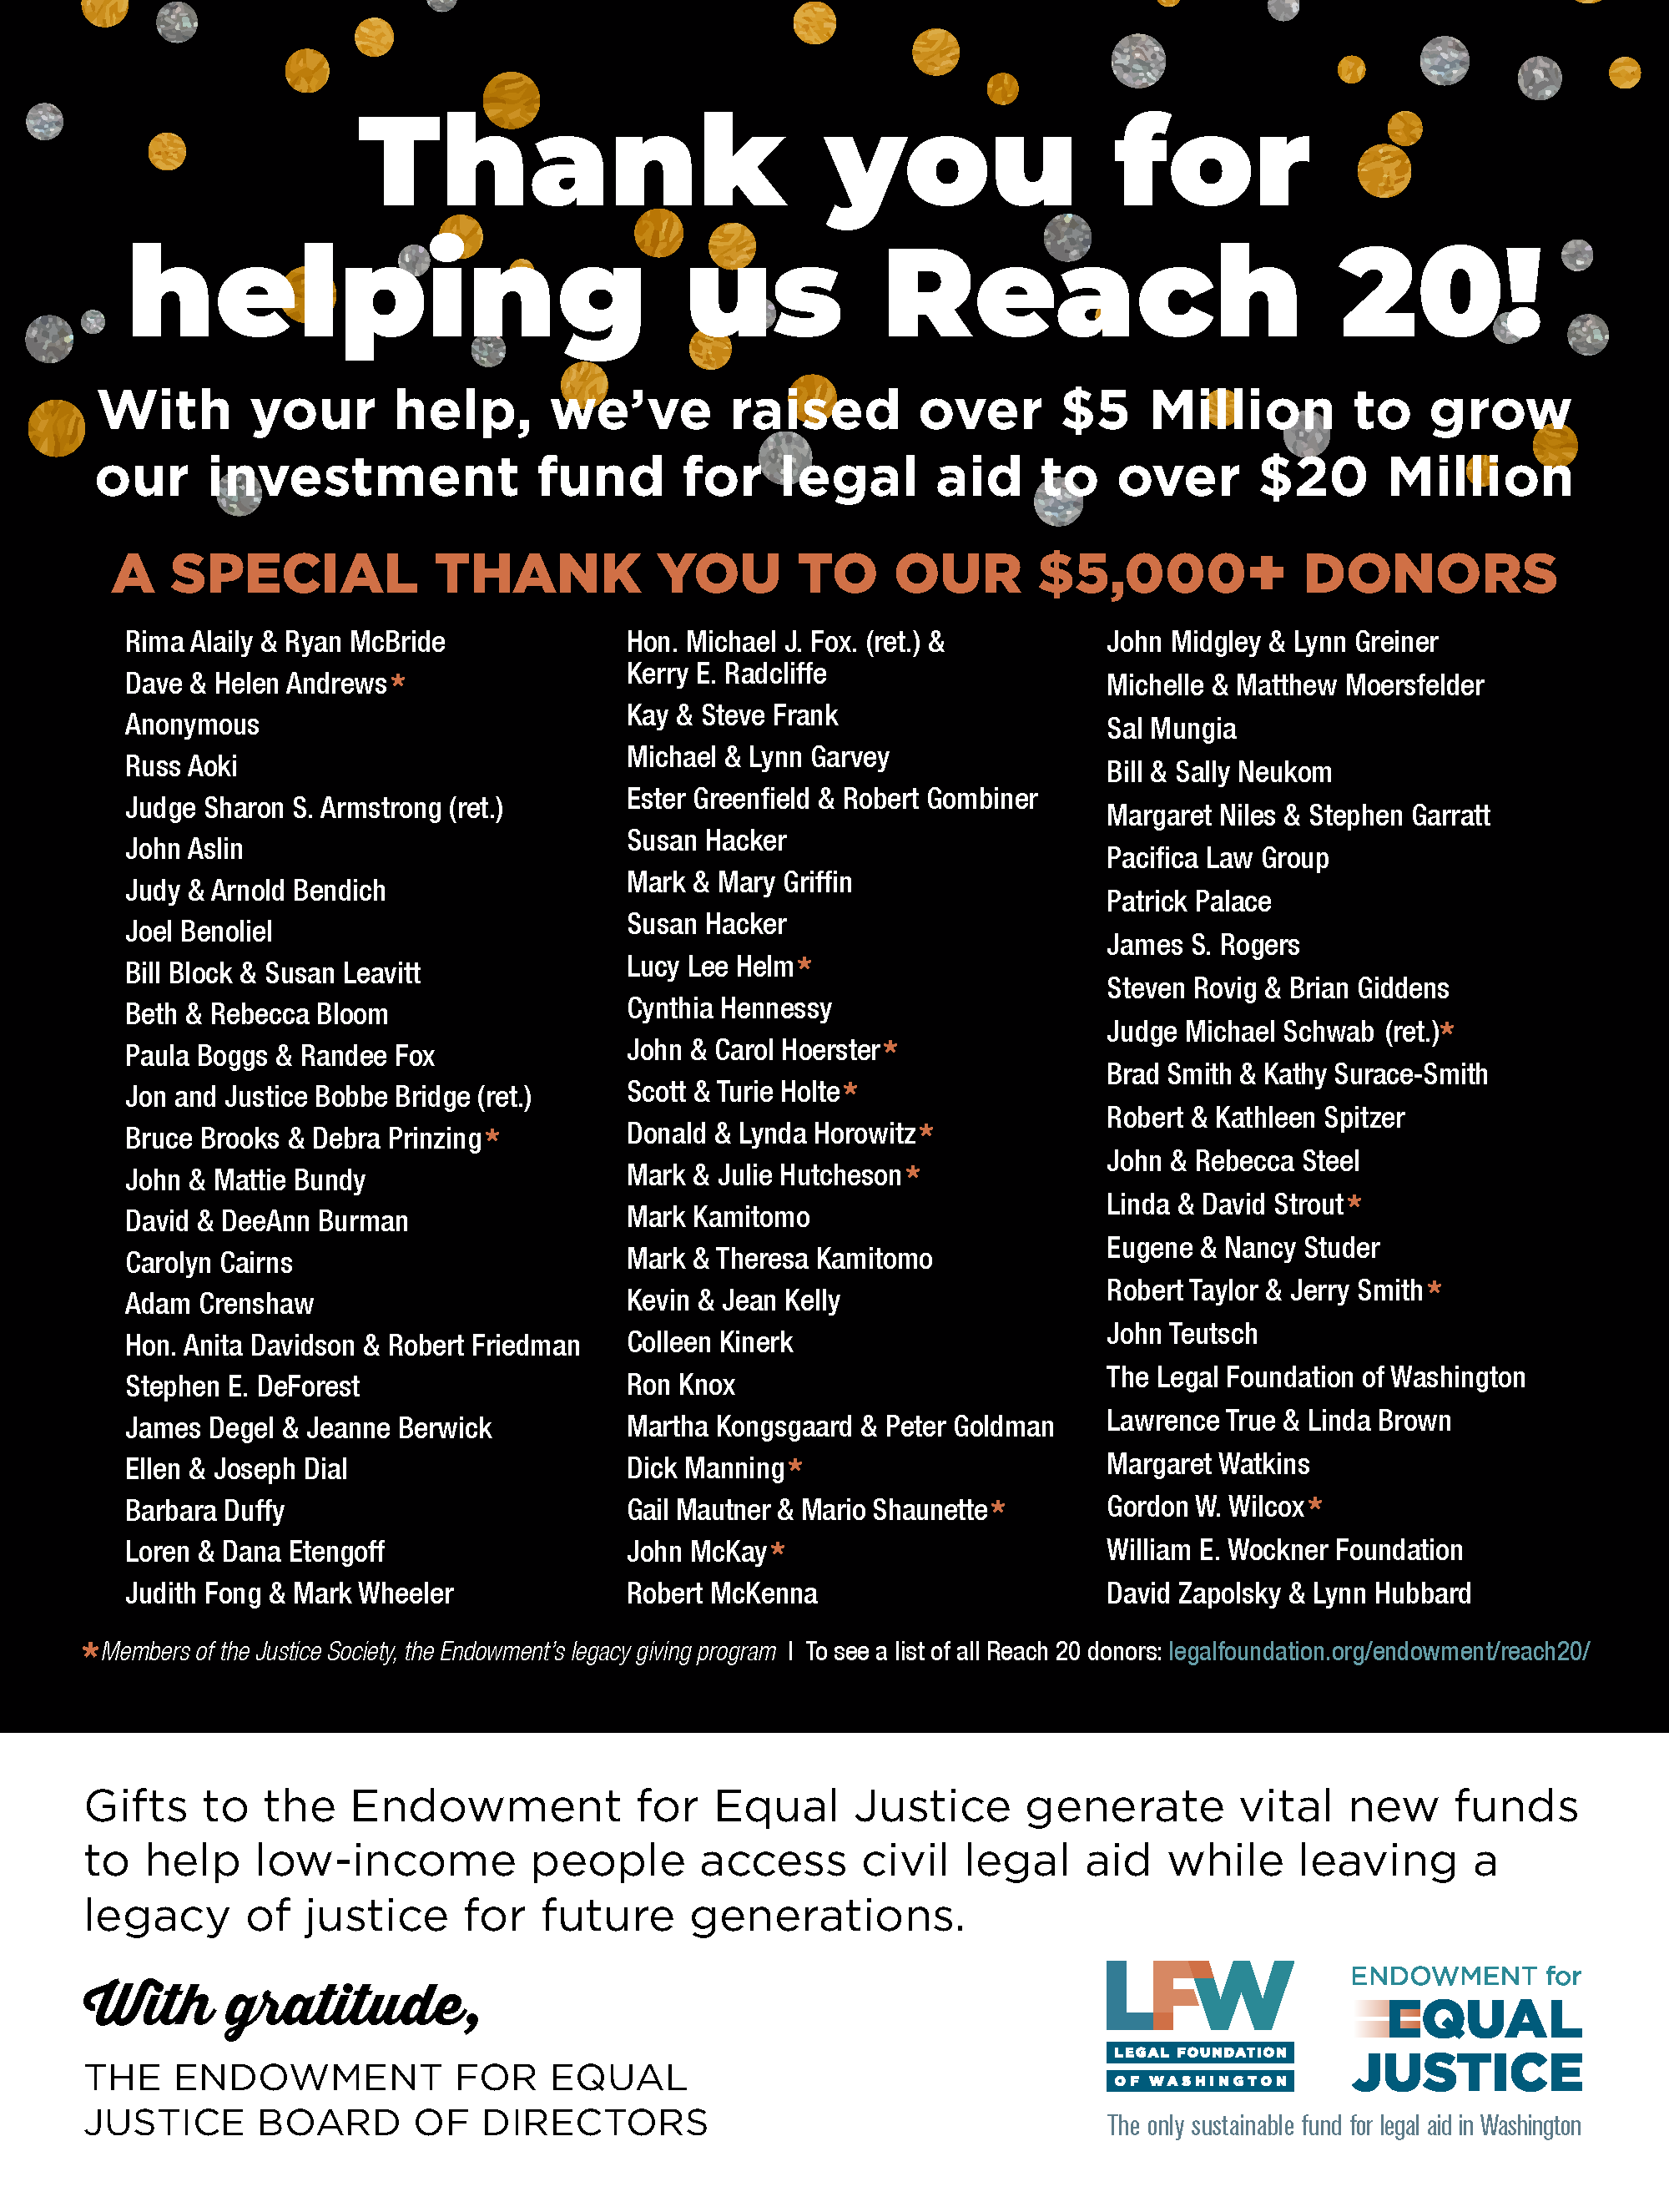 List of donors who have given over $5,000